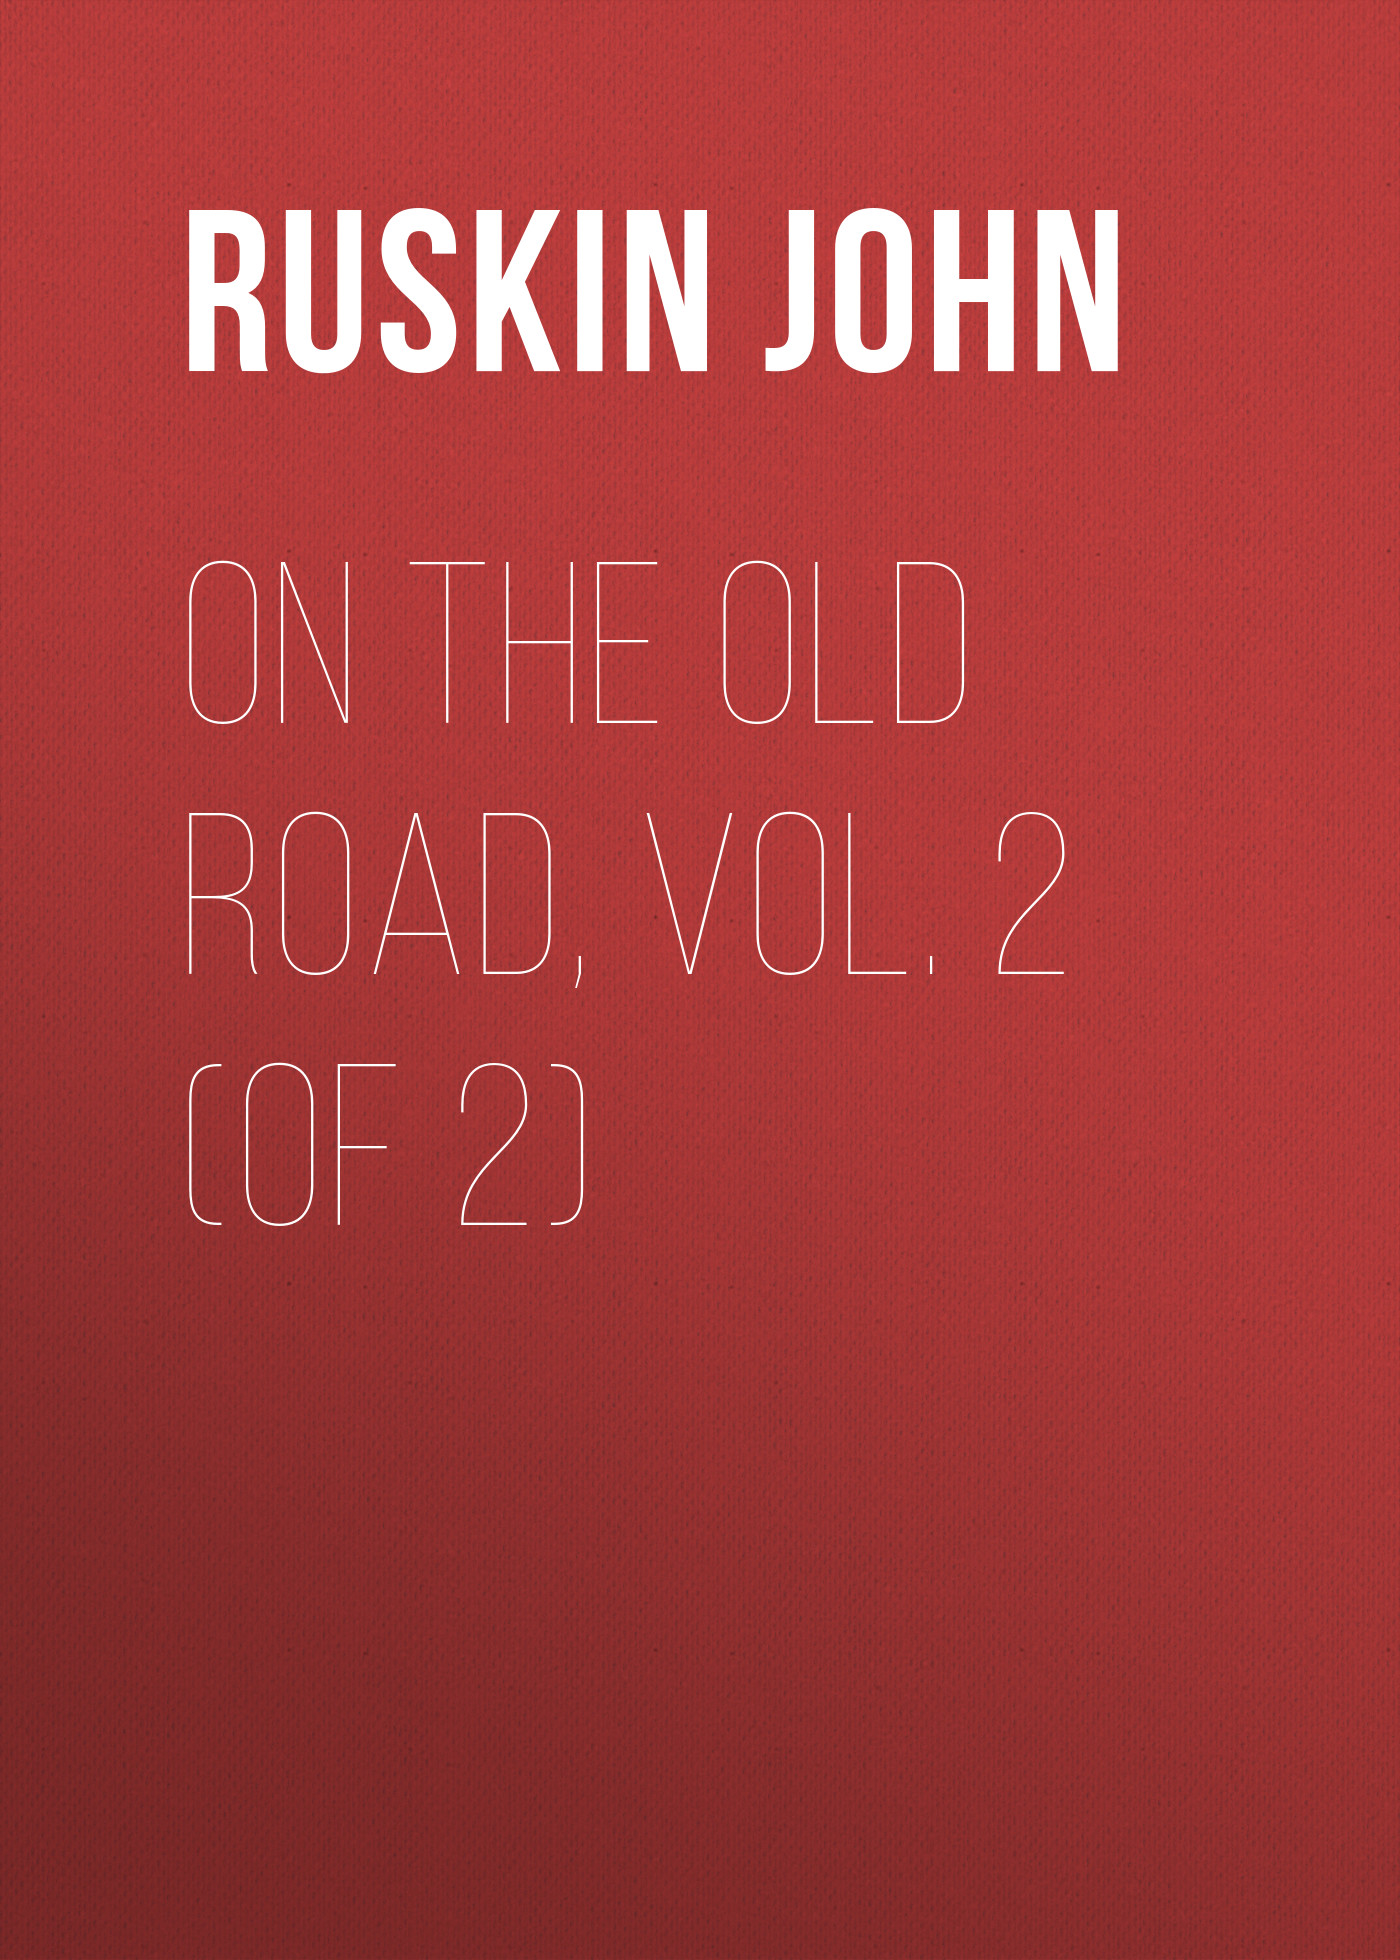 Ruskin John On the Old Road, Vol. 2 (of 2) ruskin john the poetry of architecture